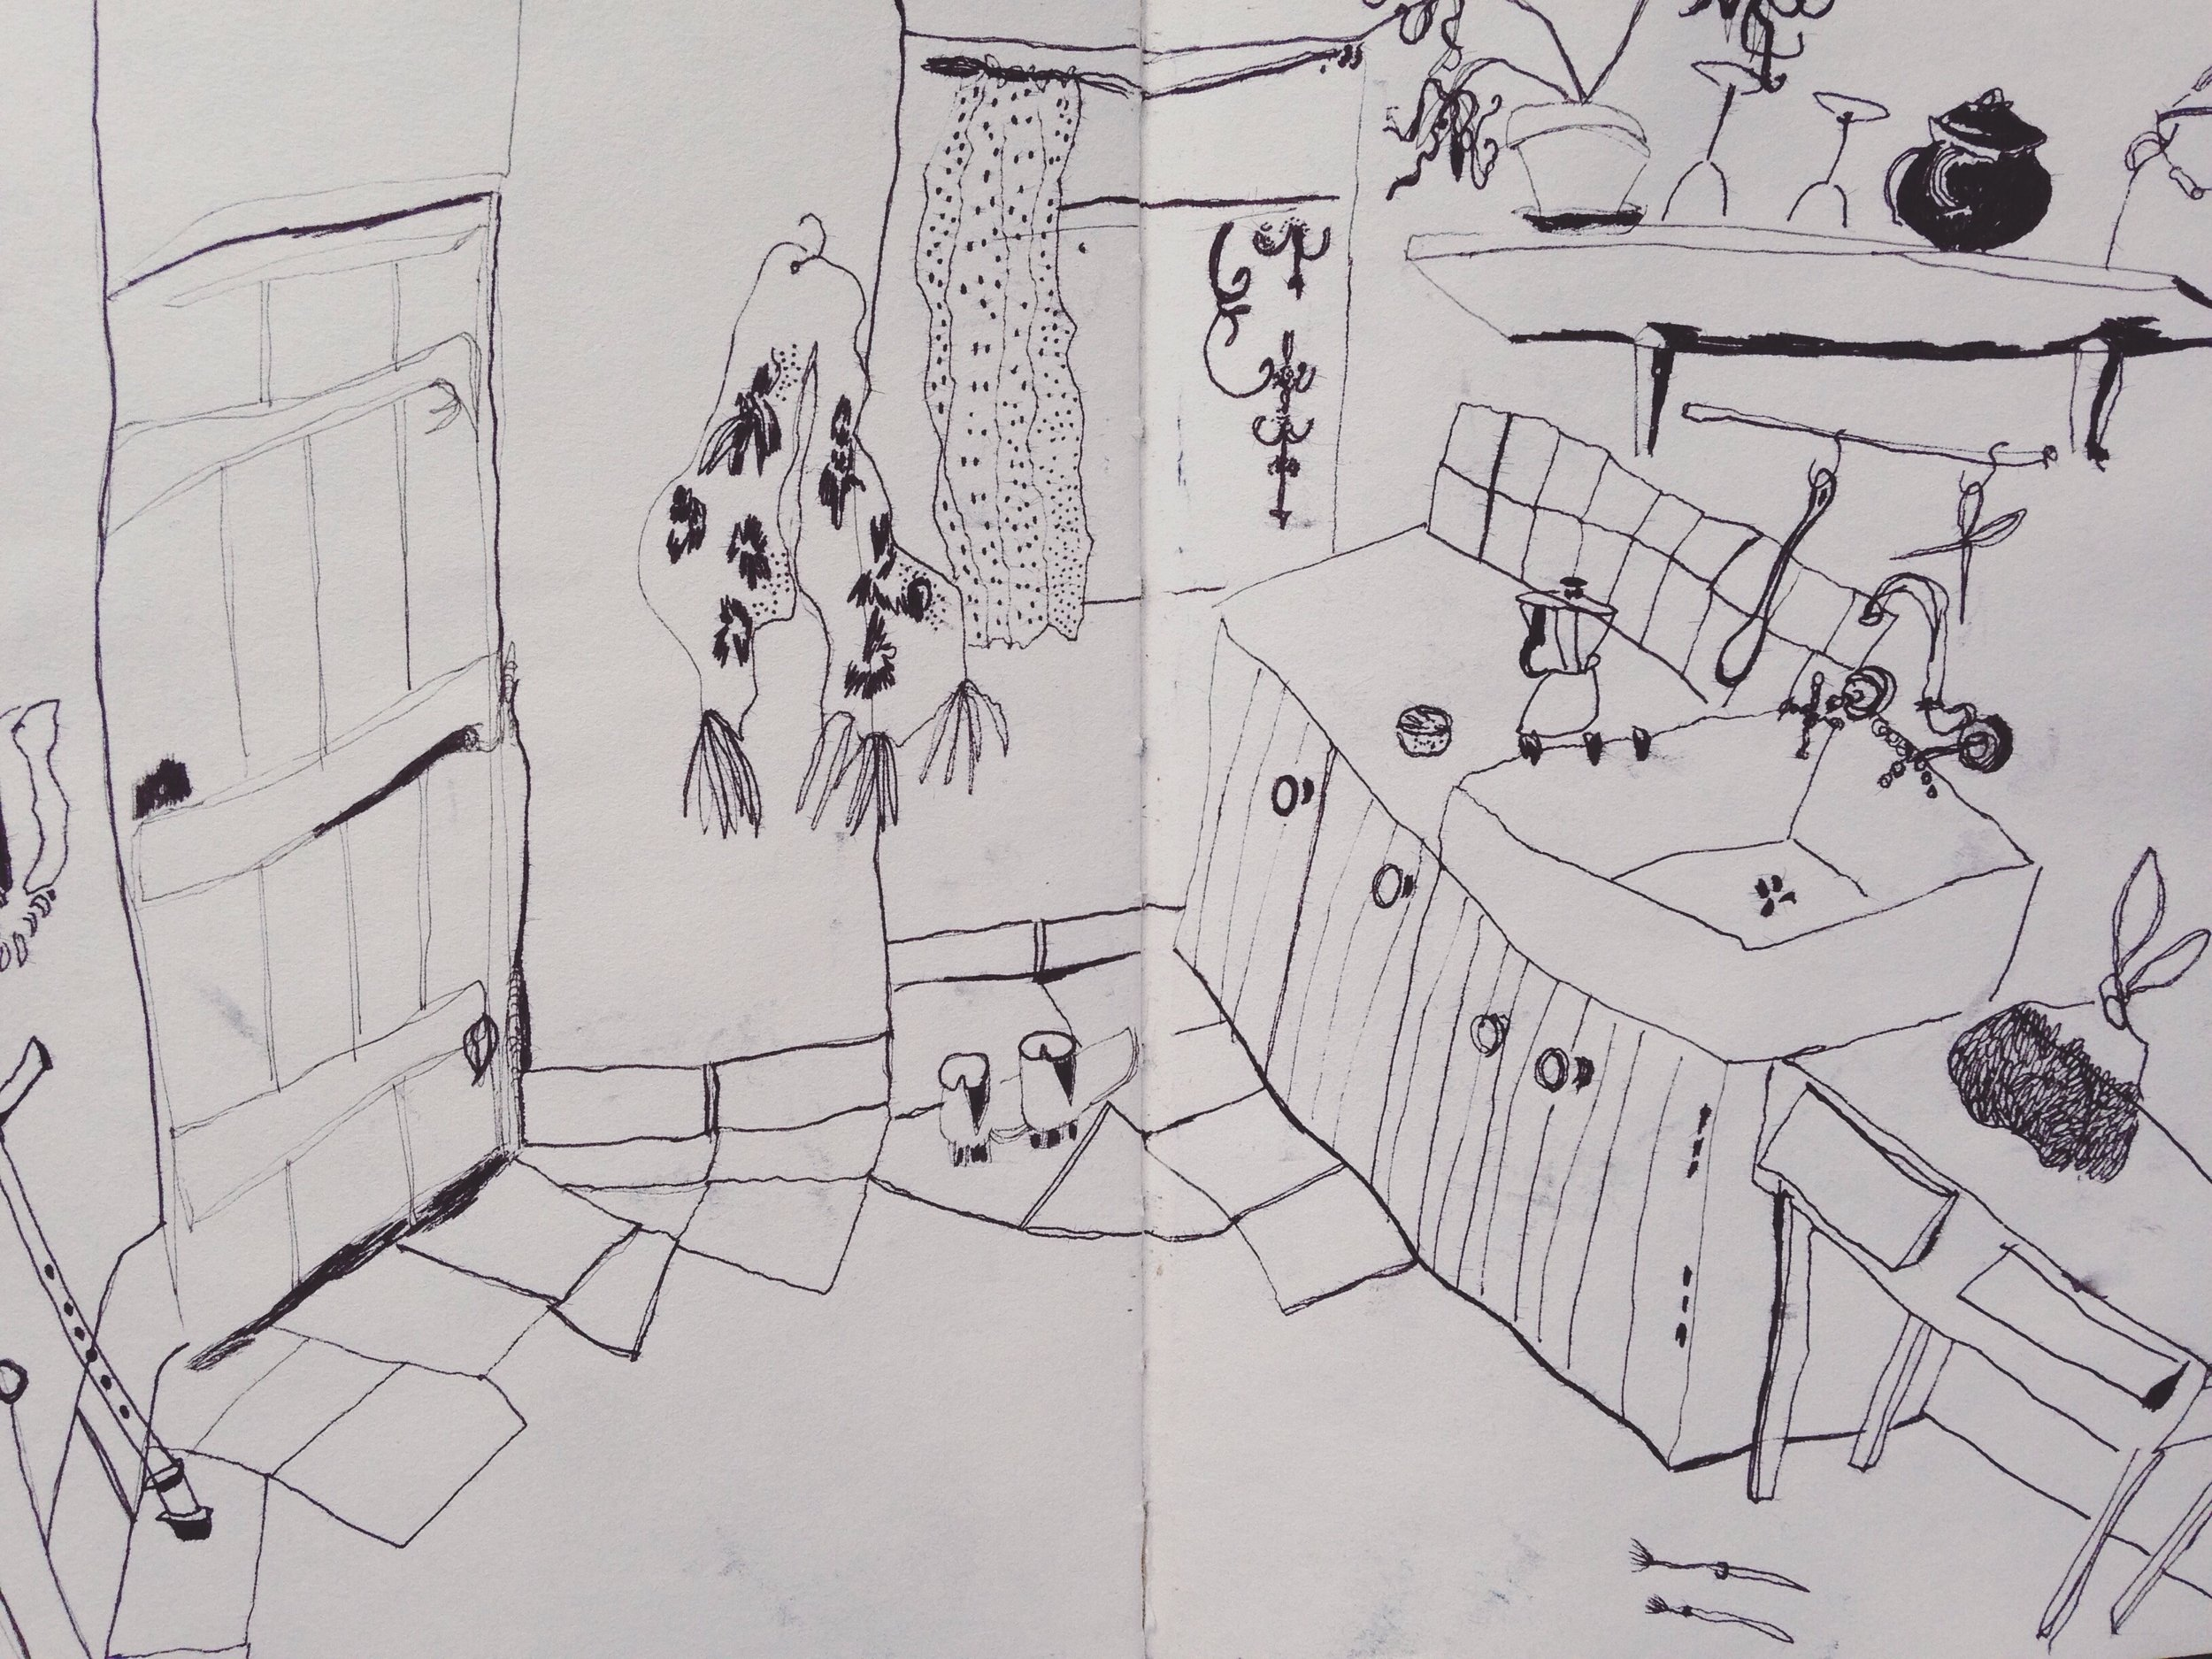 Lisbon-Kitchen_21x29.7_ink-1.jpg